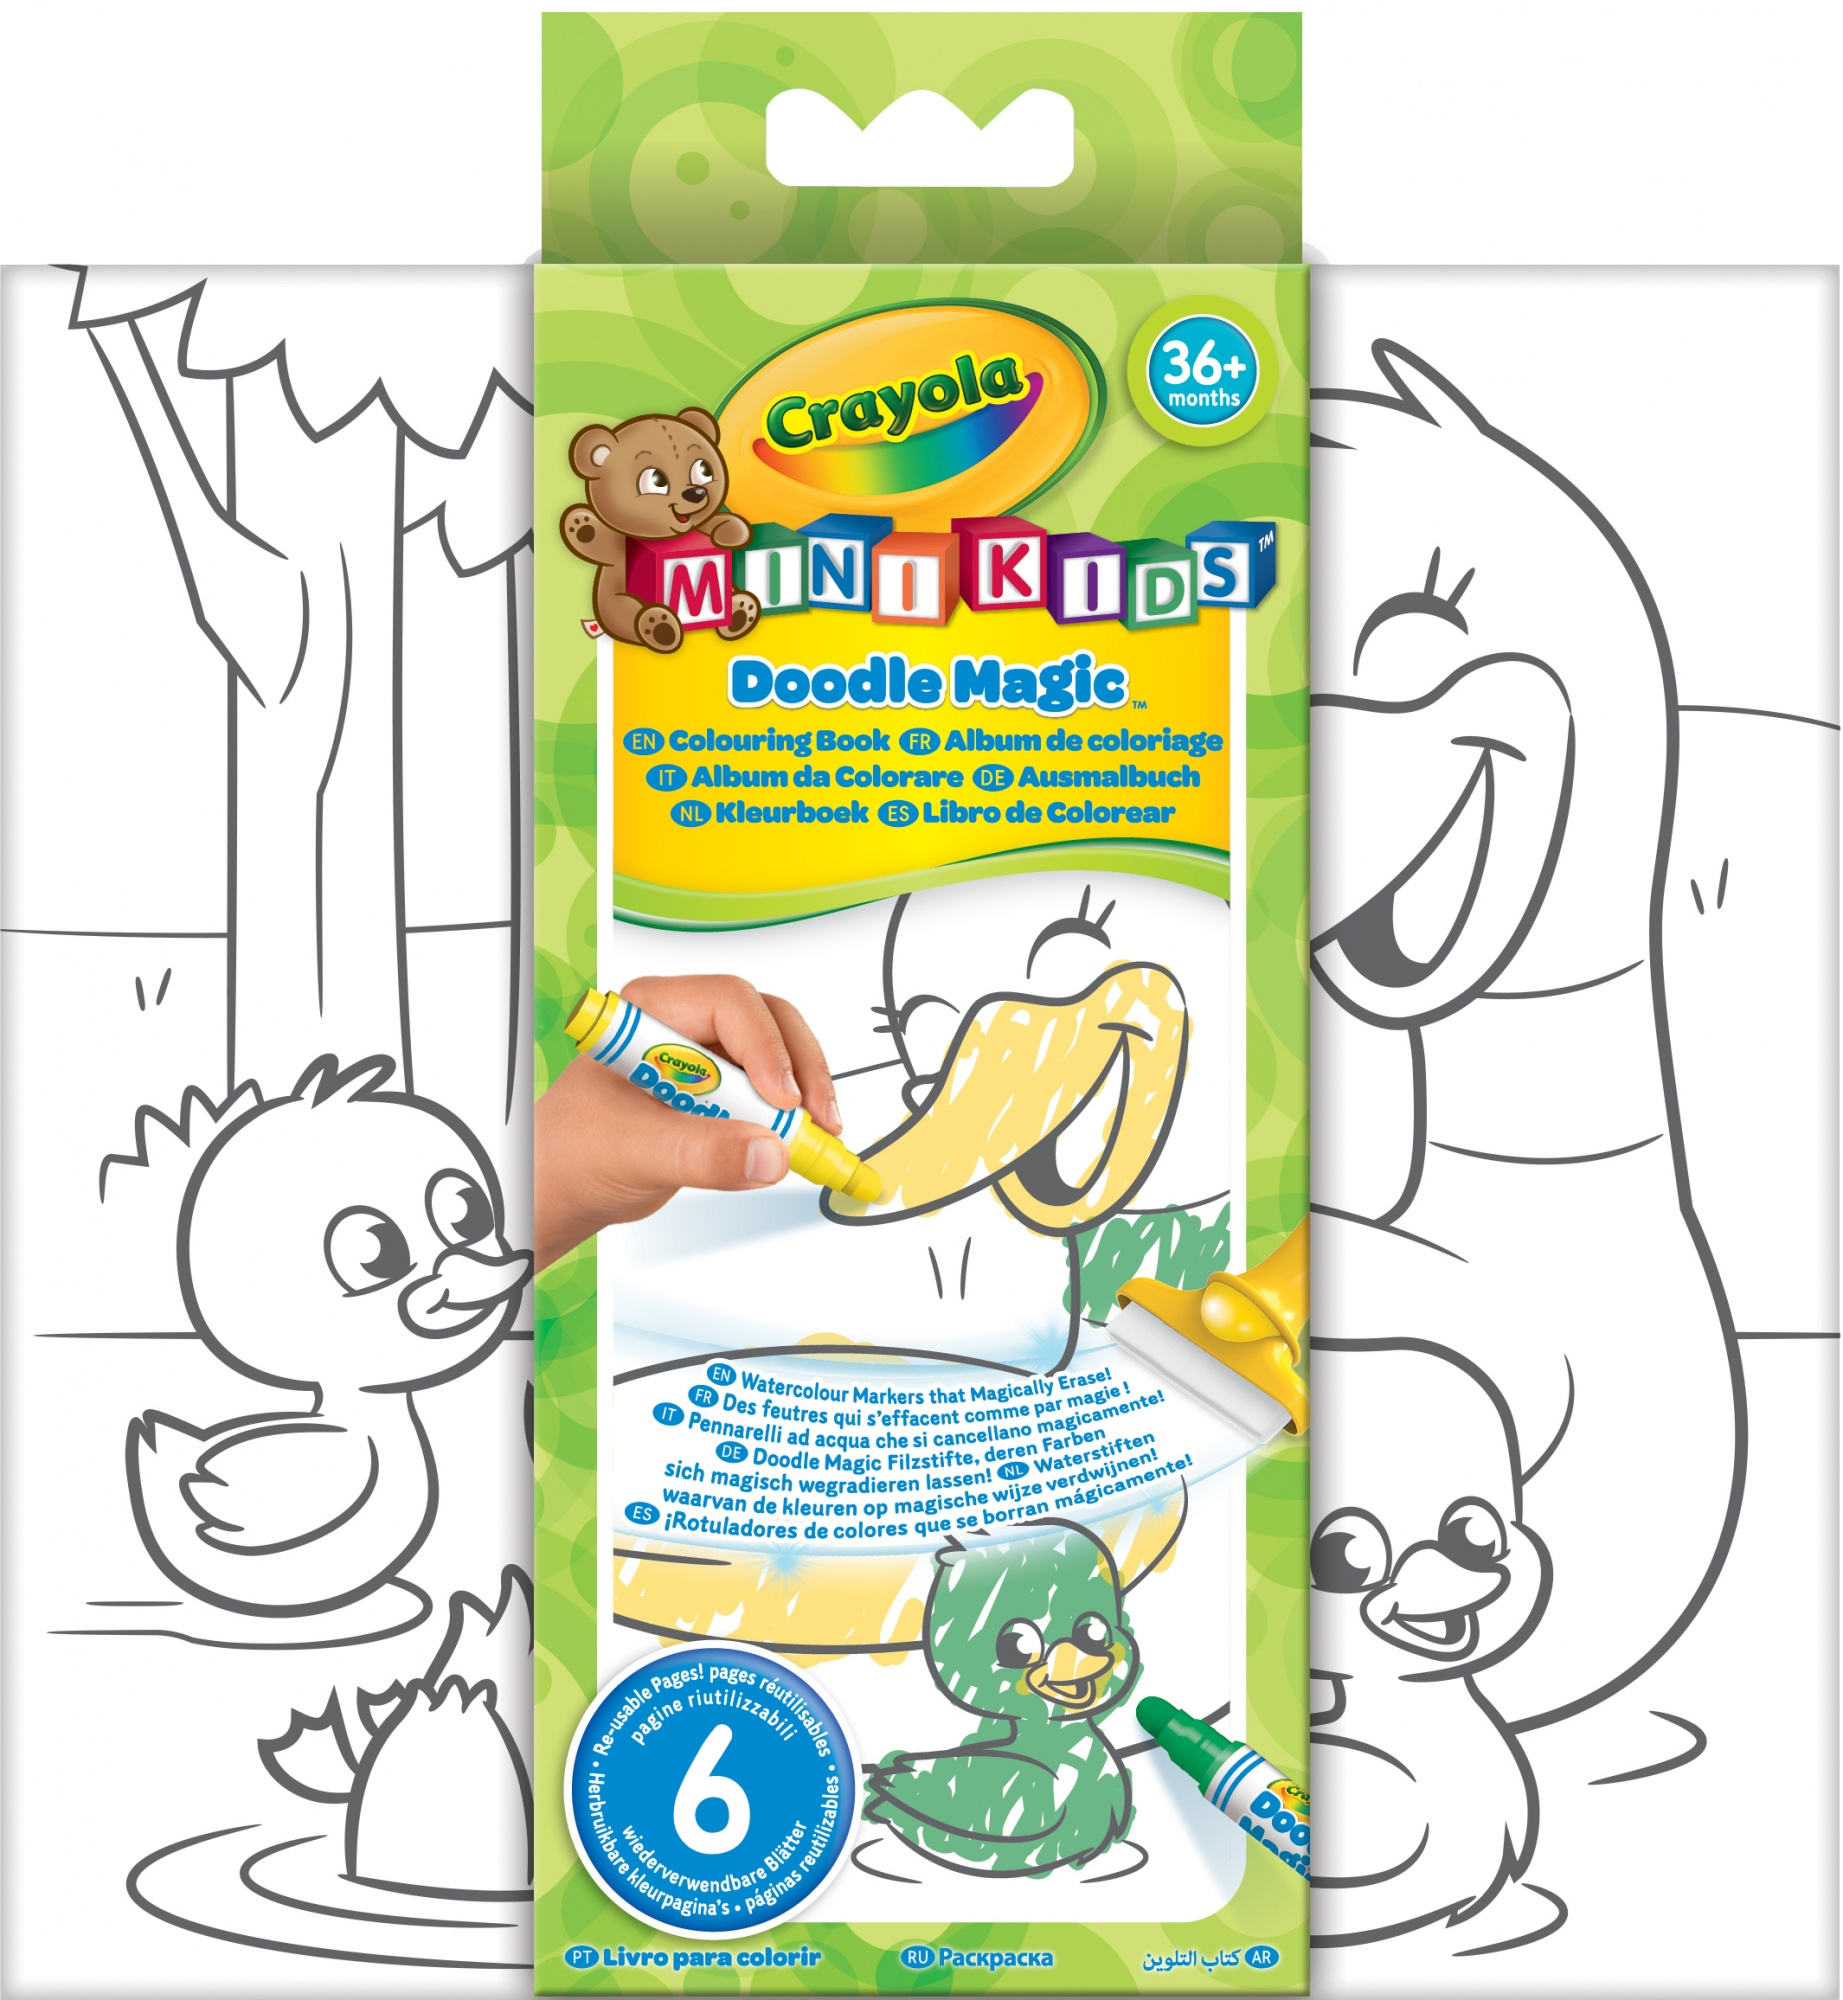 Crayola Mini Kids : Doodle Magic Color Book - Internet-Toys